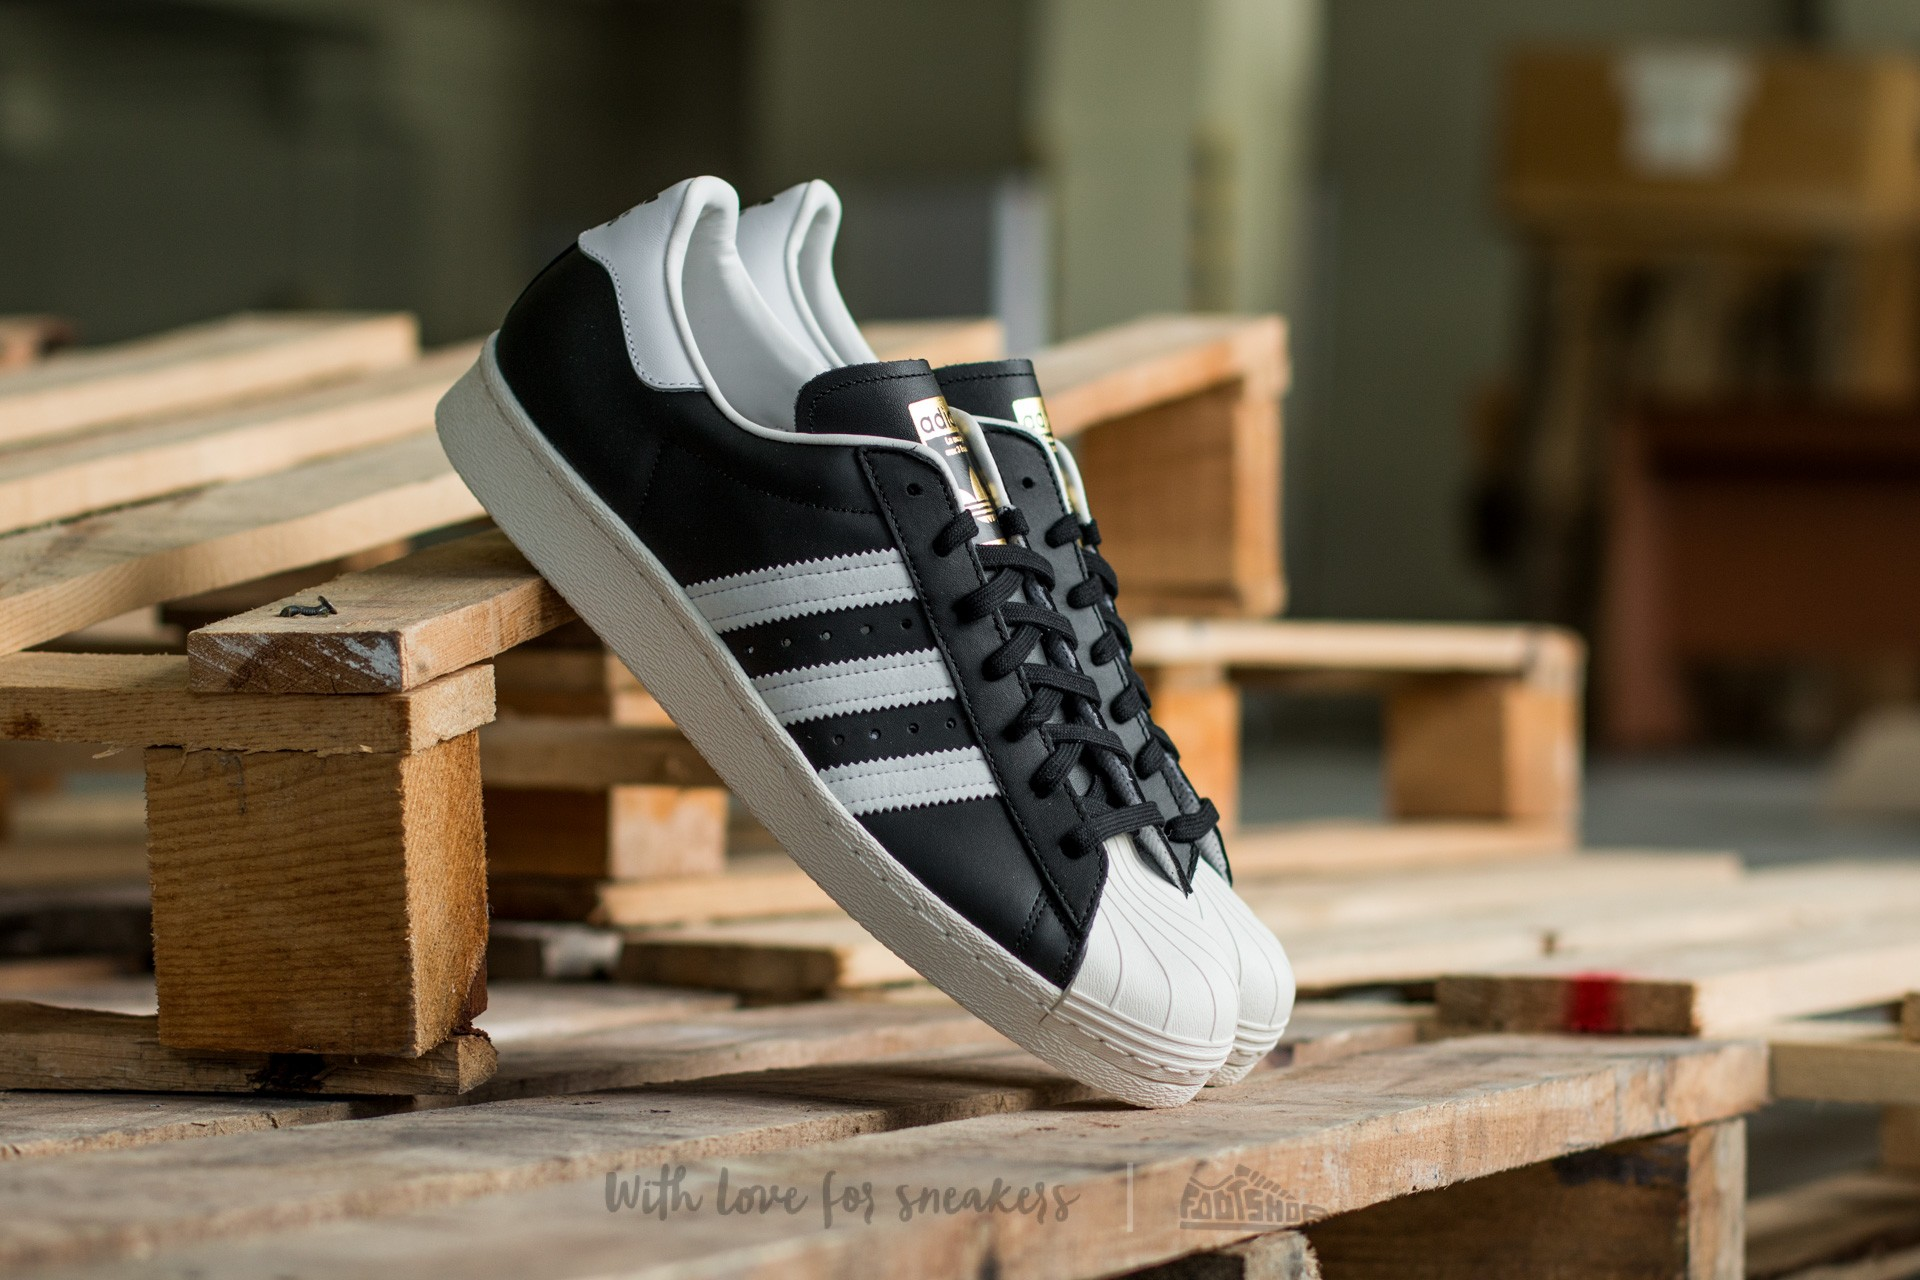 adidas Superstar 80s Black1/Wht/Chalk2